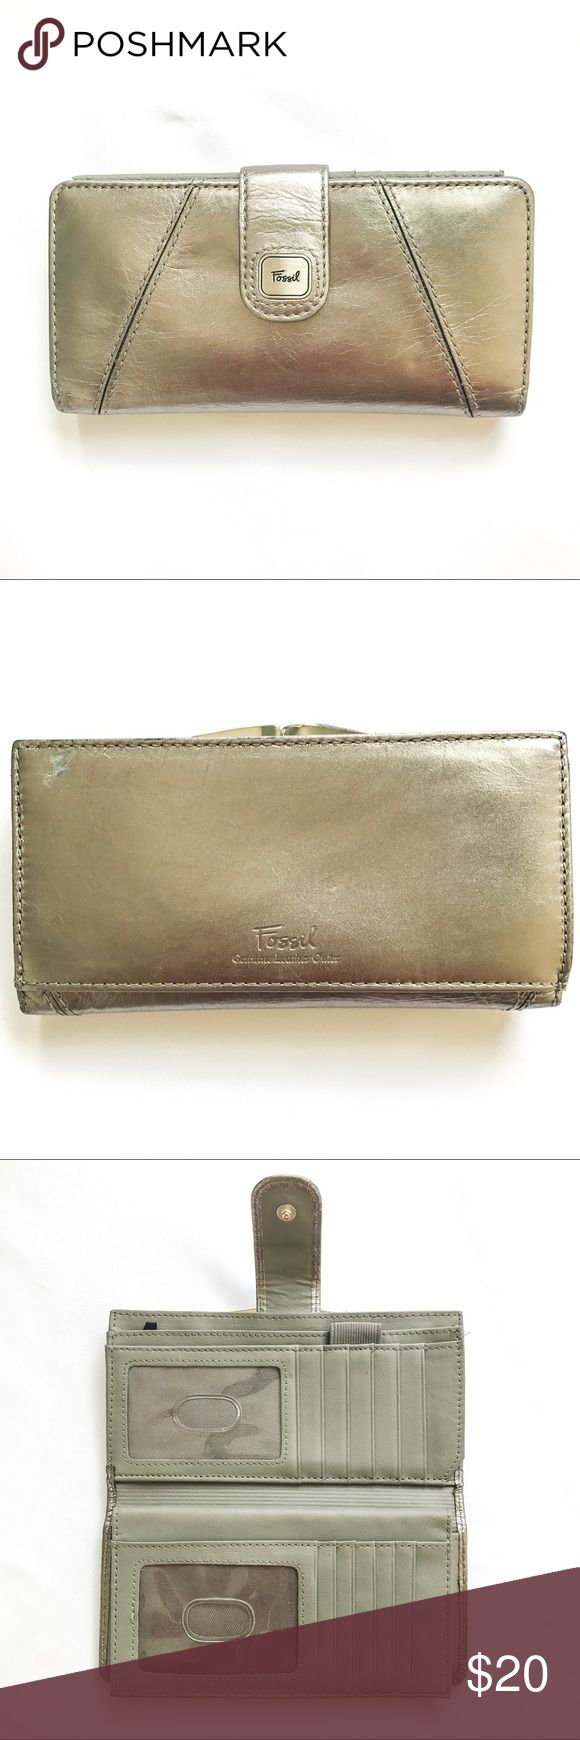 Fossil wallet Silver fossil wallet.  Good condition.  Small scratch on the back on the left corner as seen in the second pic. Fossil Bags Wallets